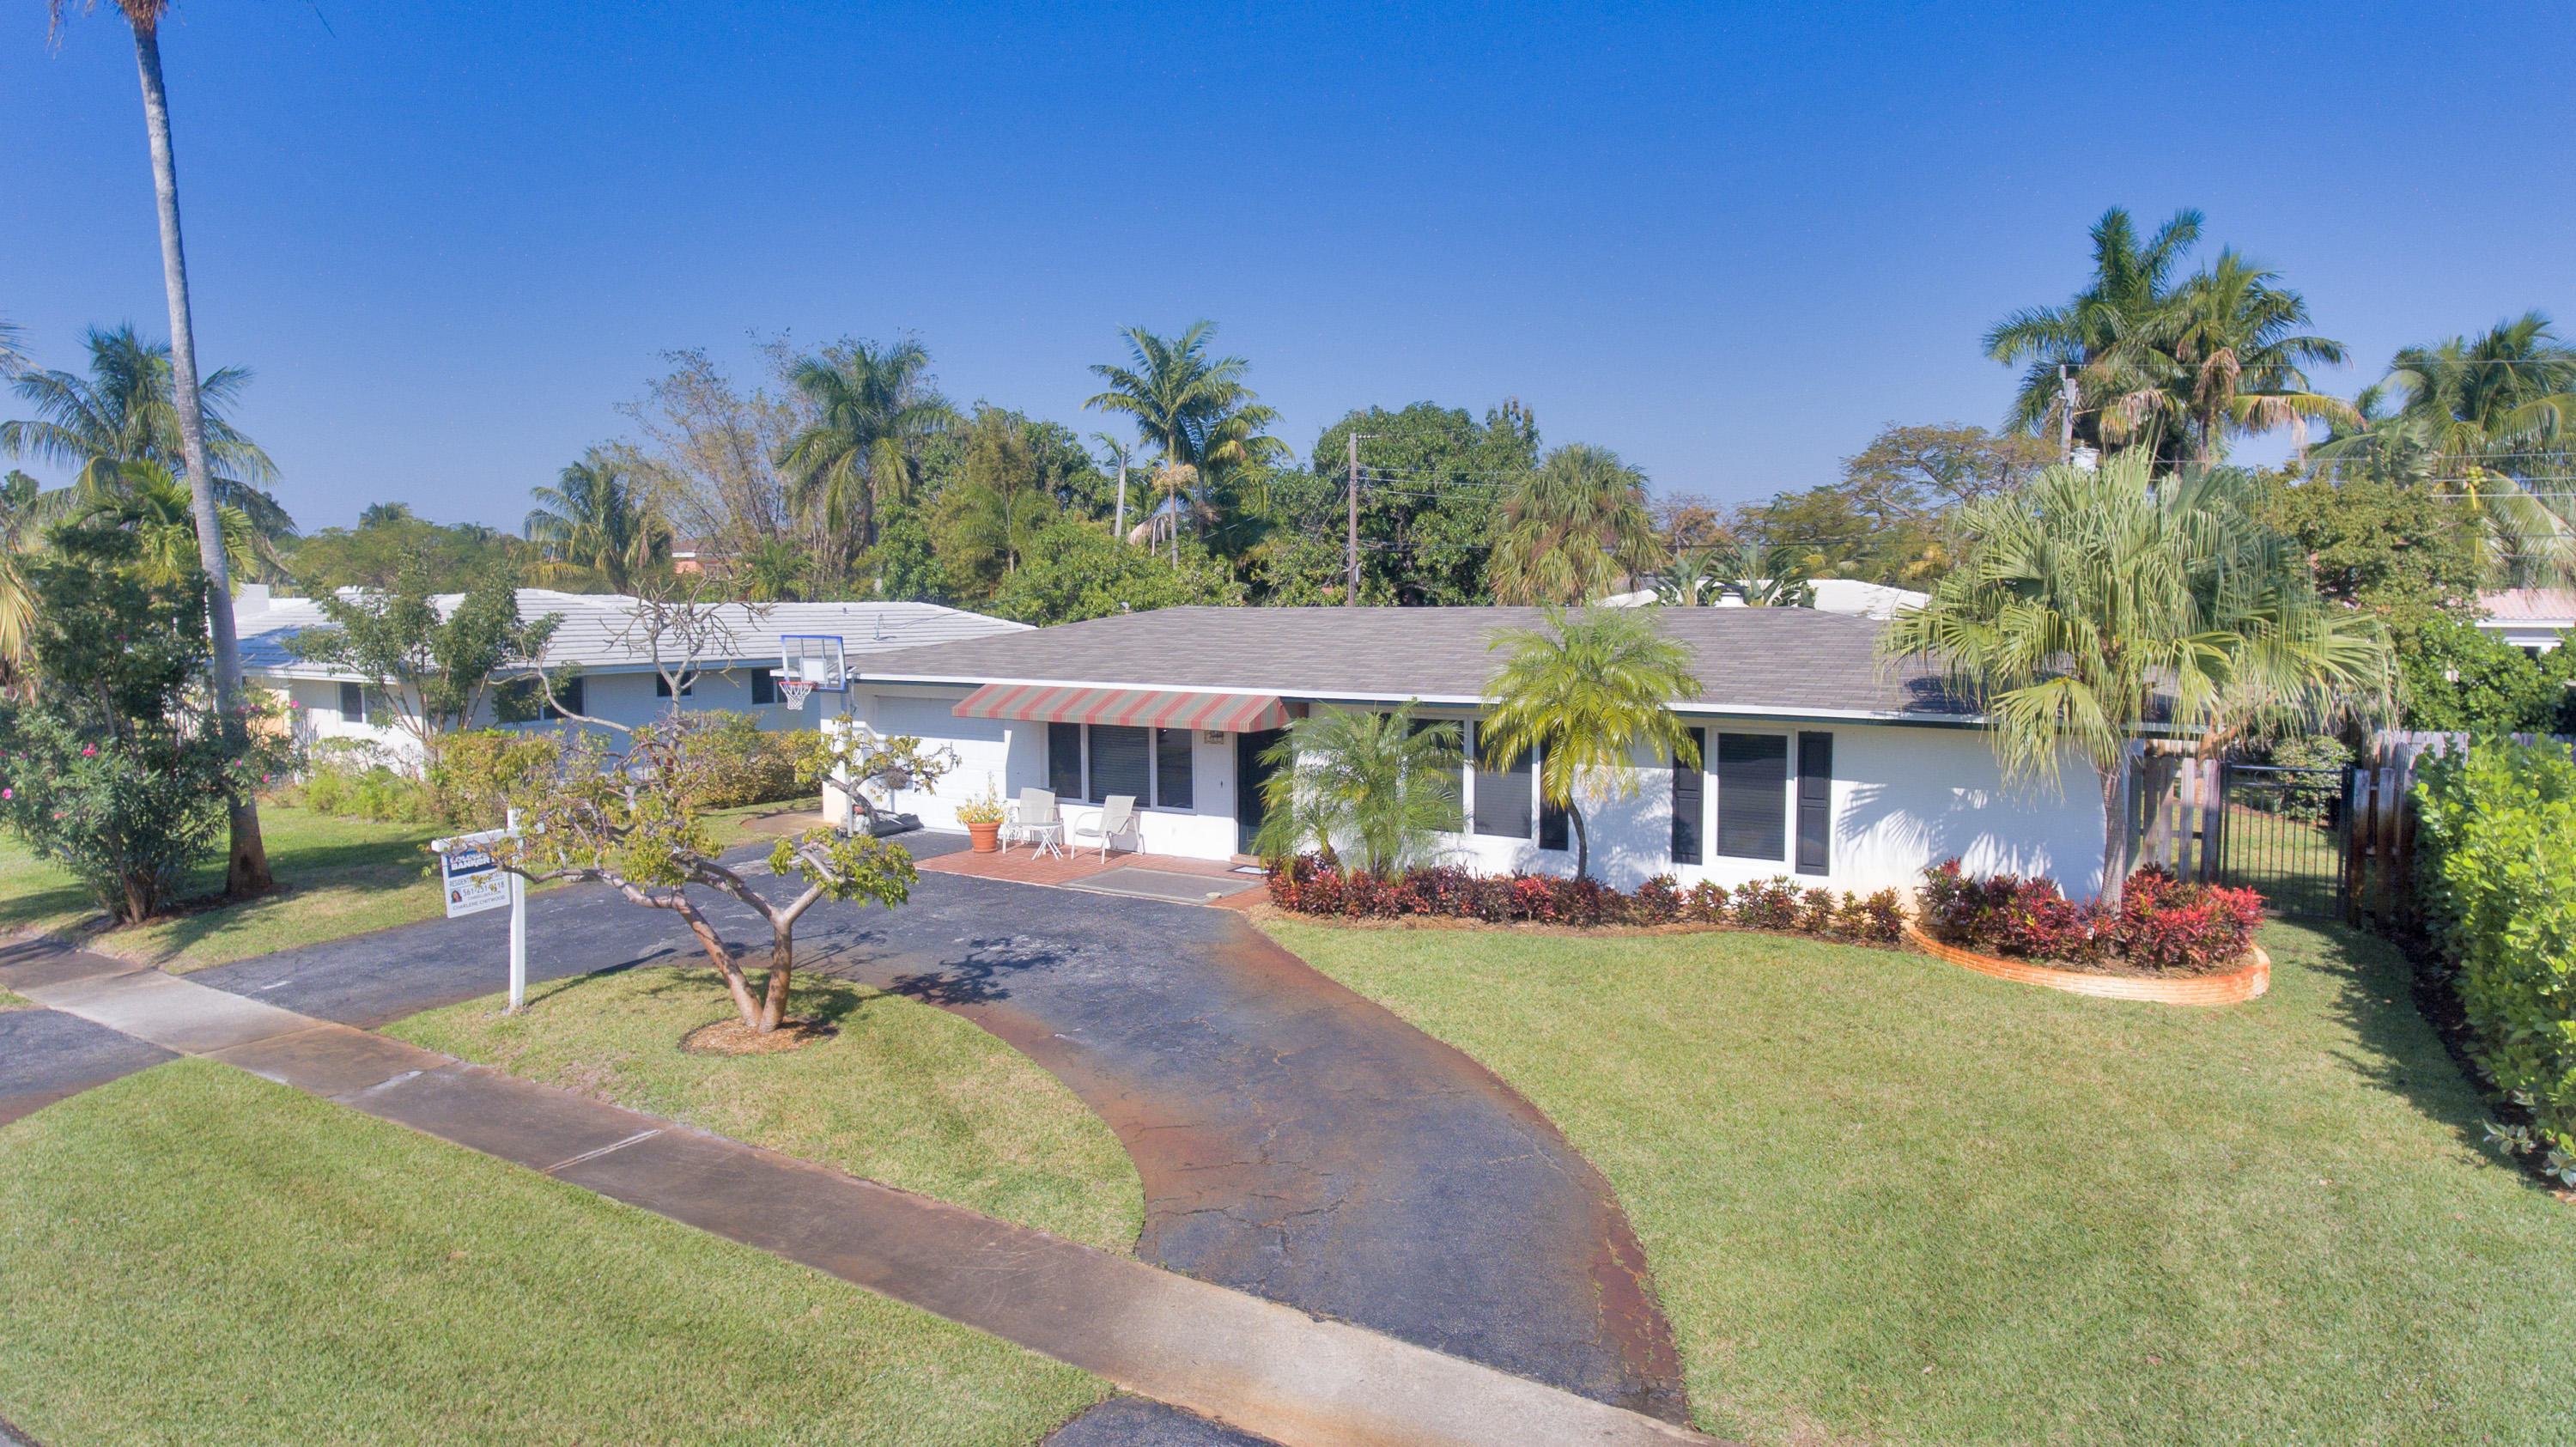 Home for sale in Bermuda Square Boca Raton Florida